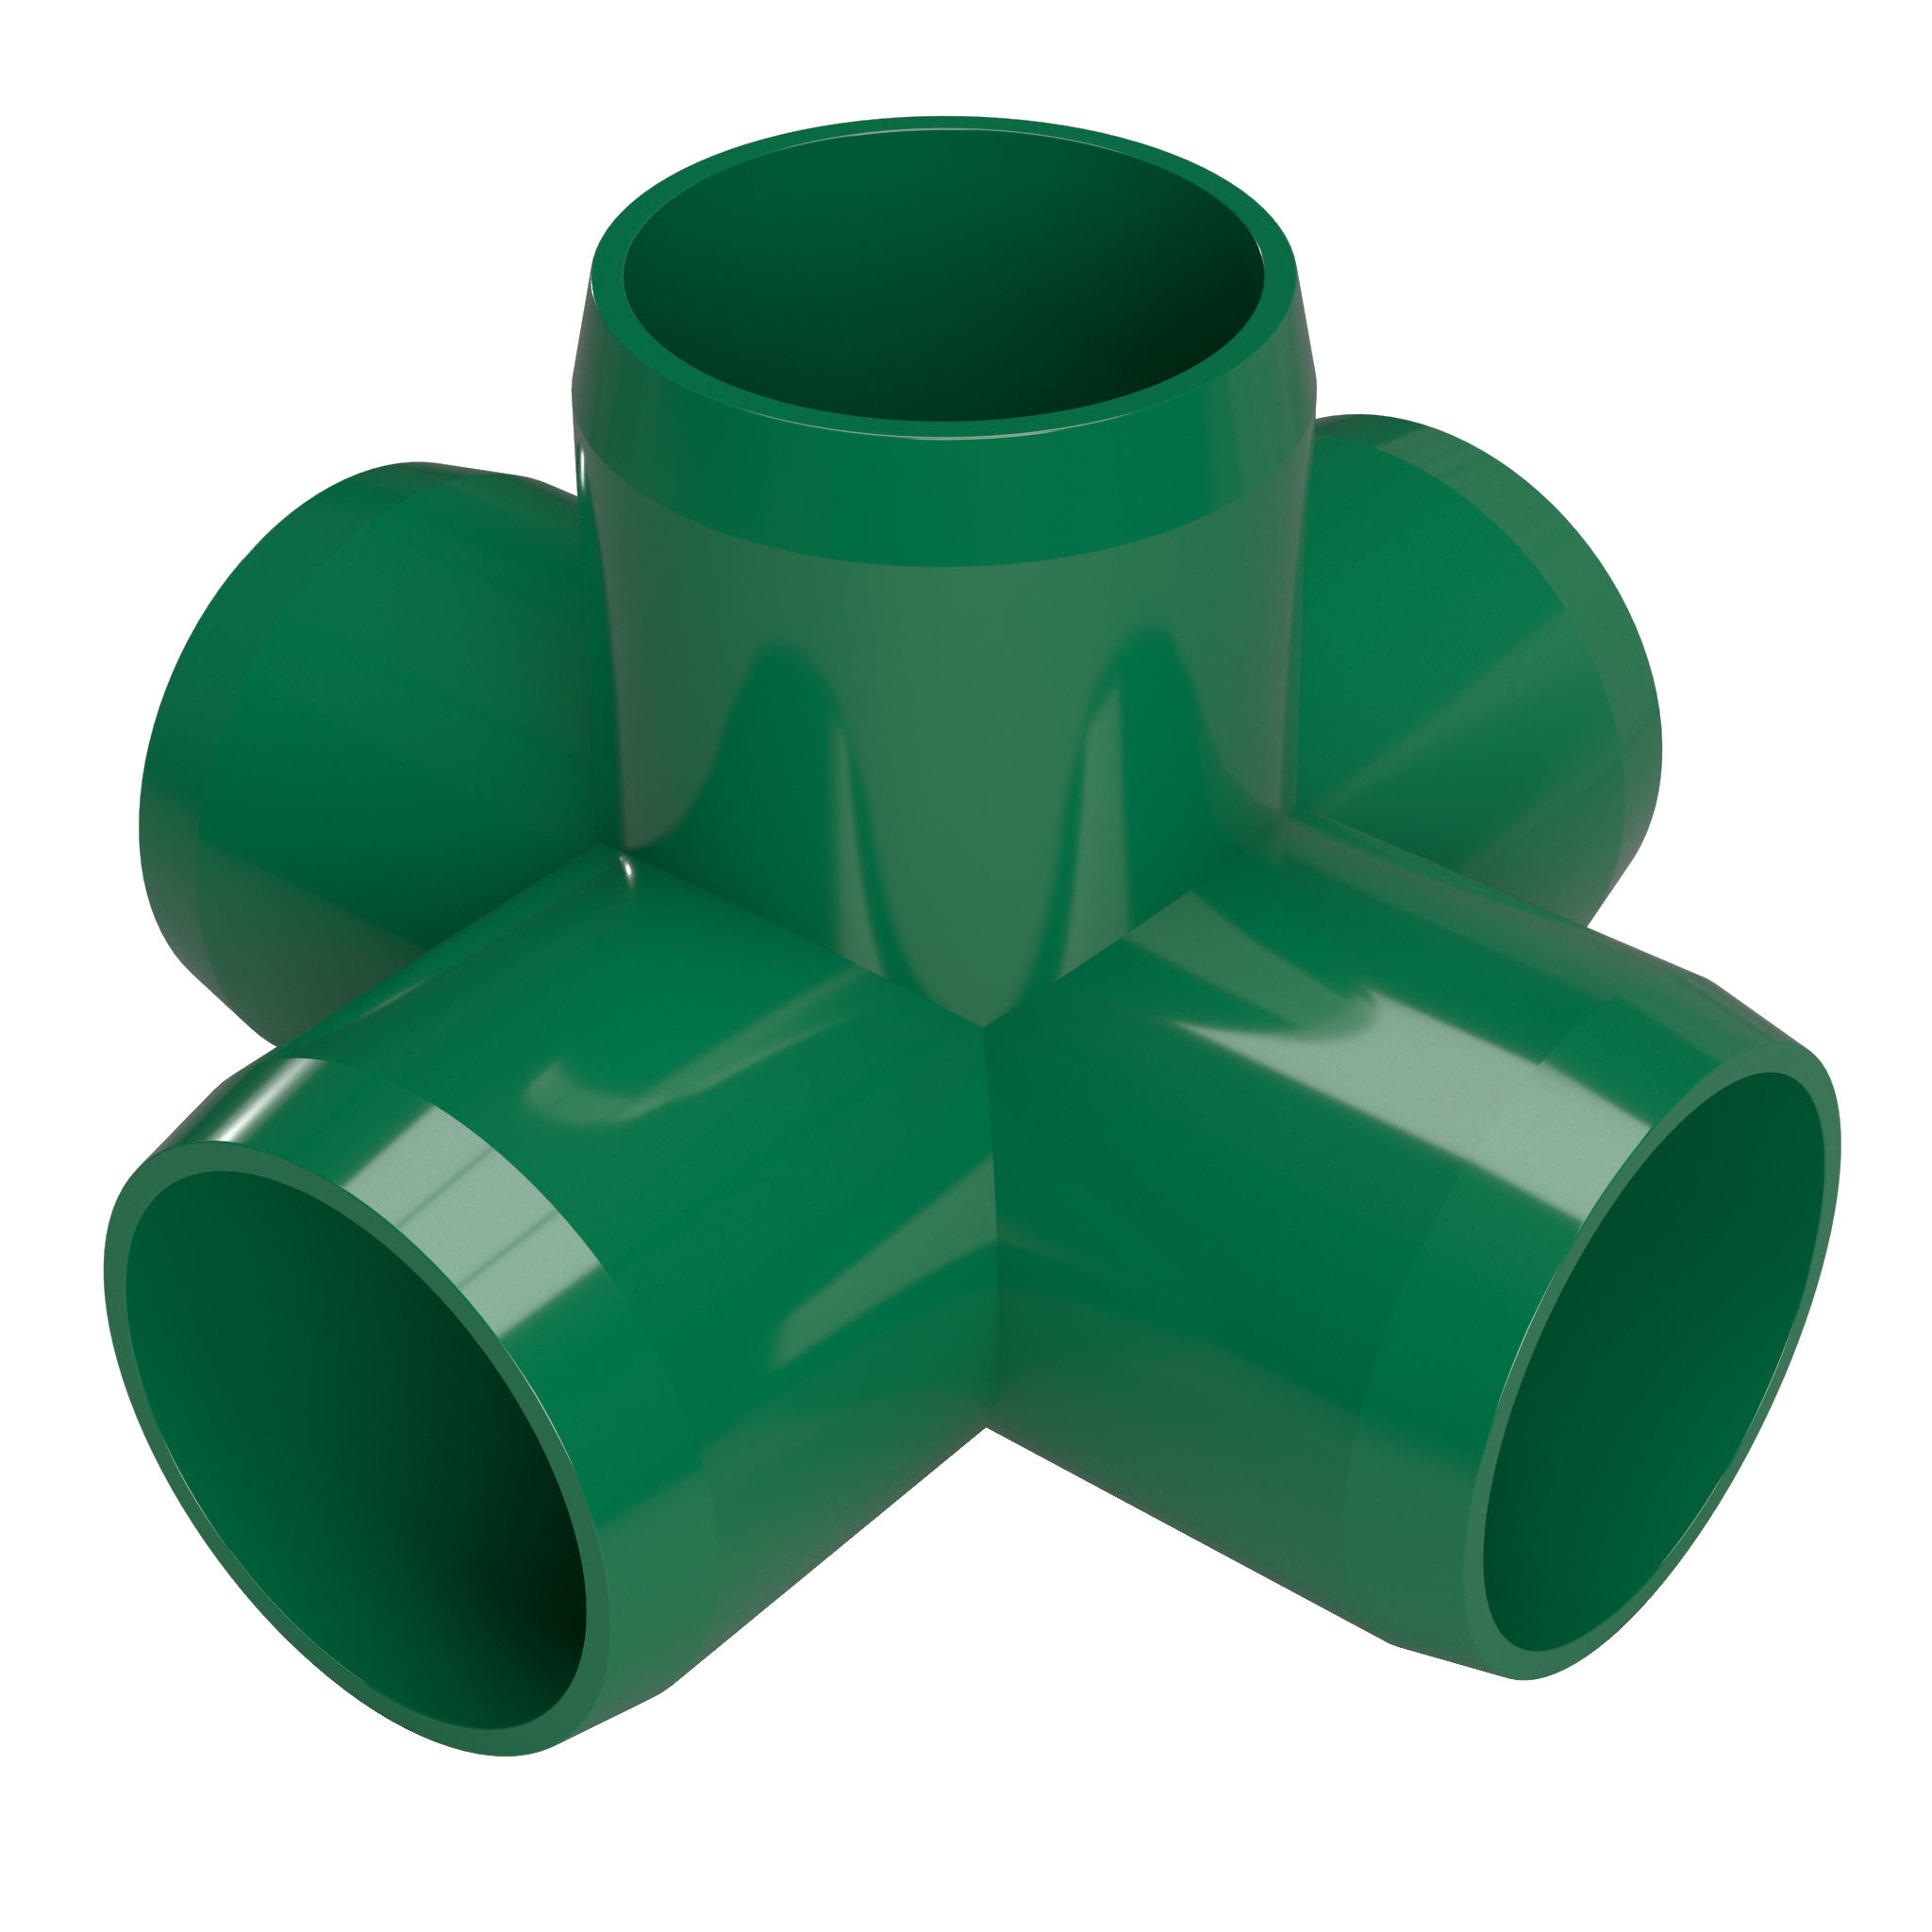 FORMUFIT F1145WC-GR-4 5-Way Cross PVC Fitting, Furniture Grade, 1-1/4 in. Size, Green , 4-Pack